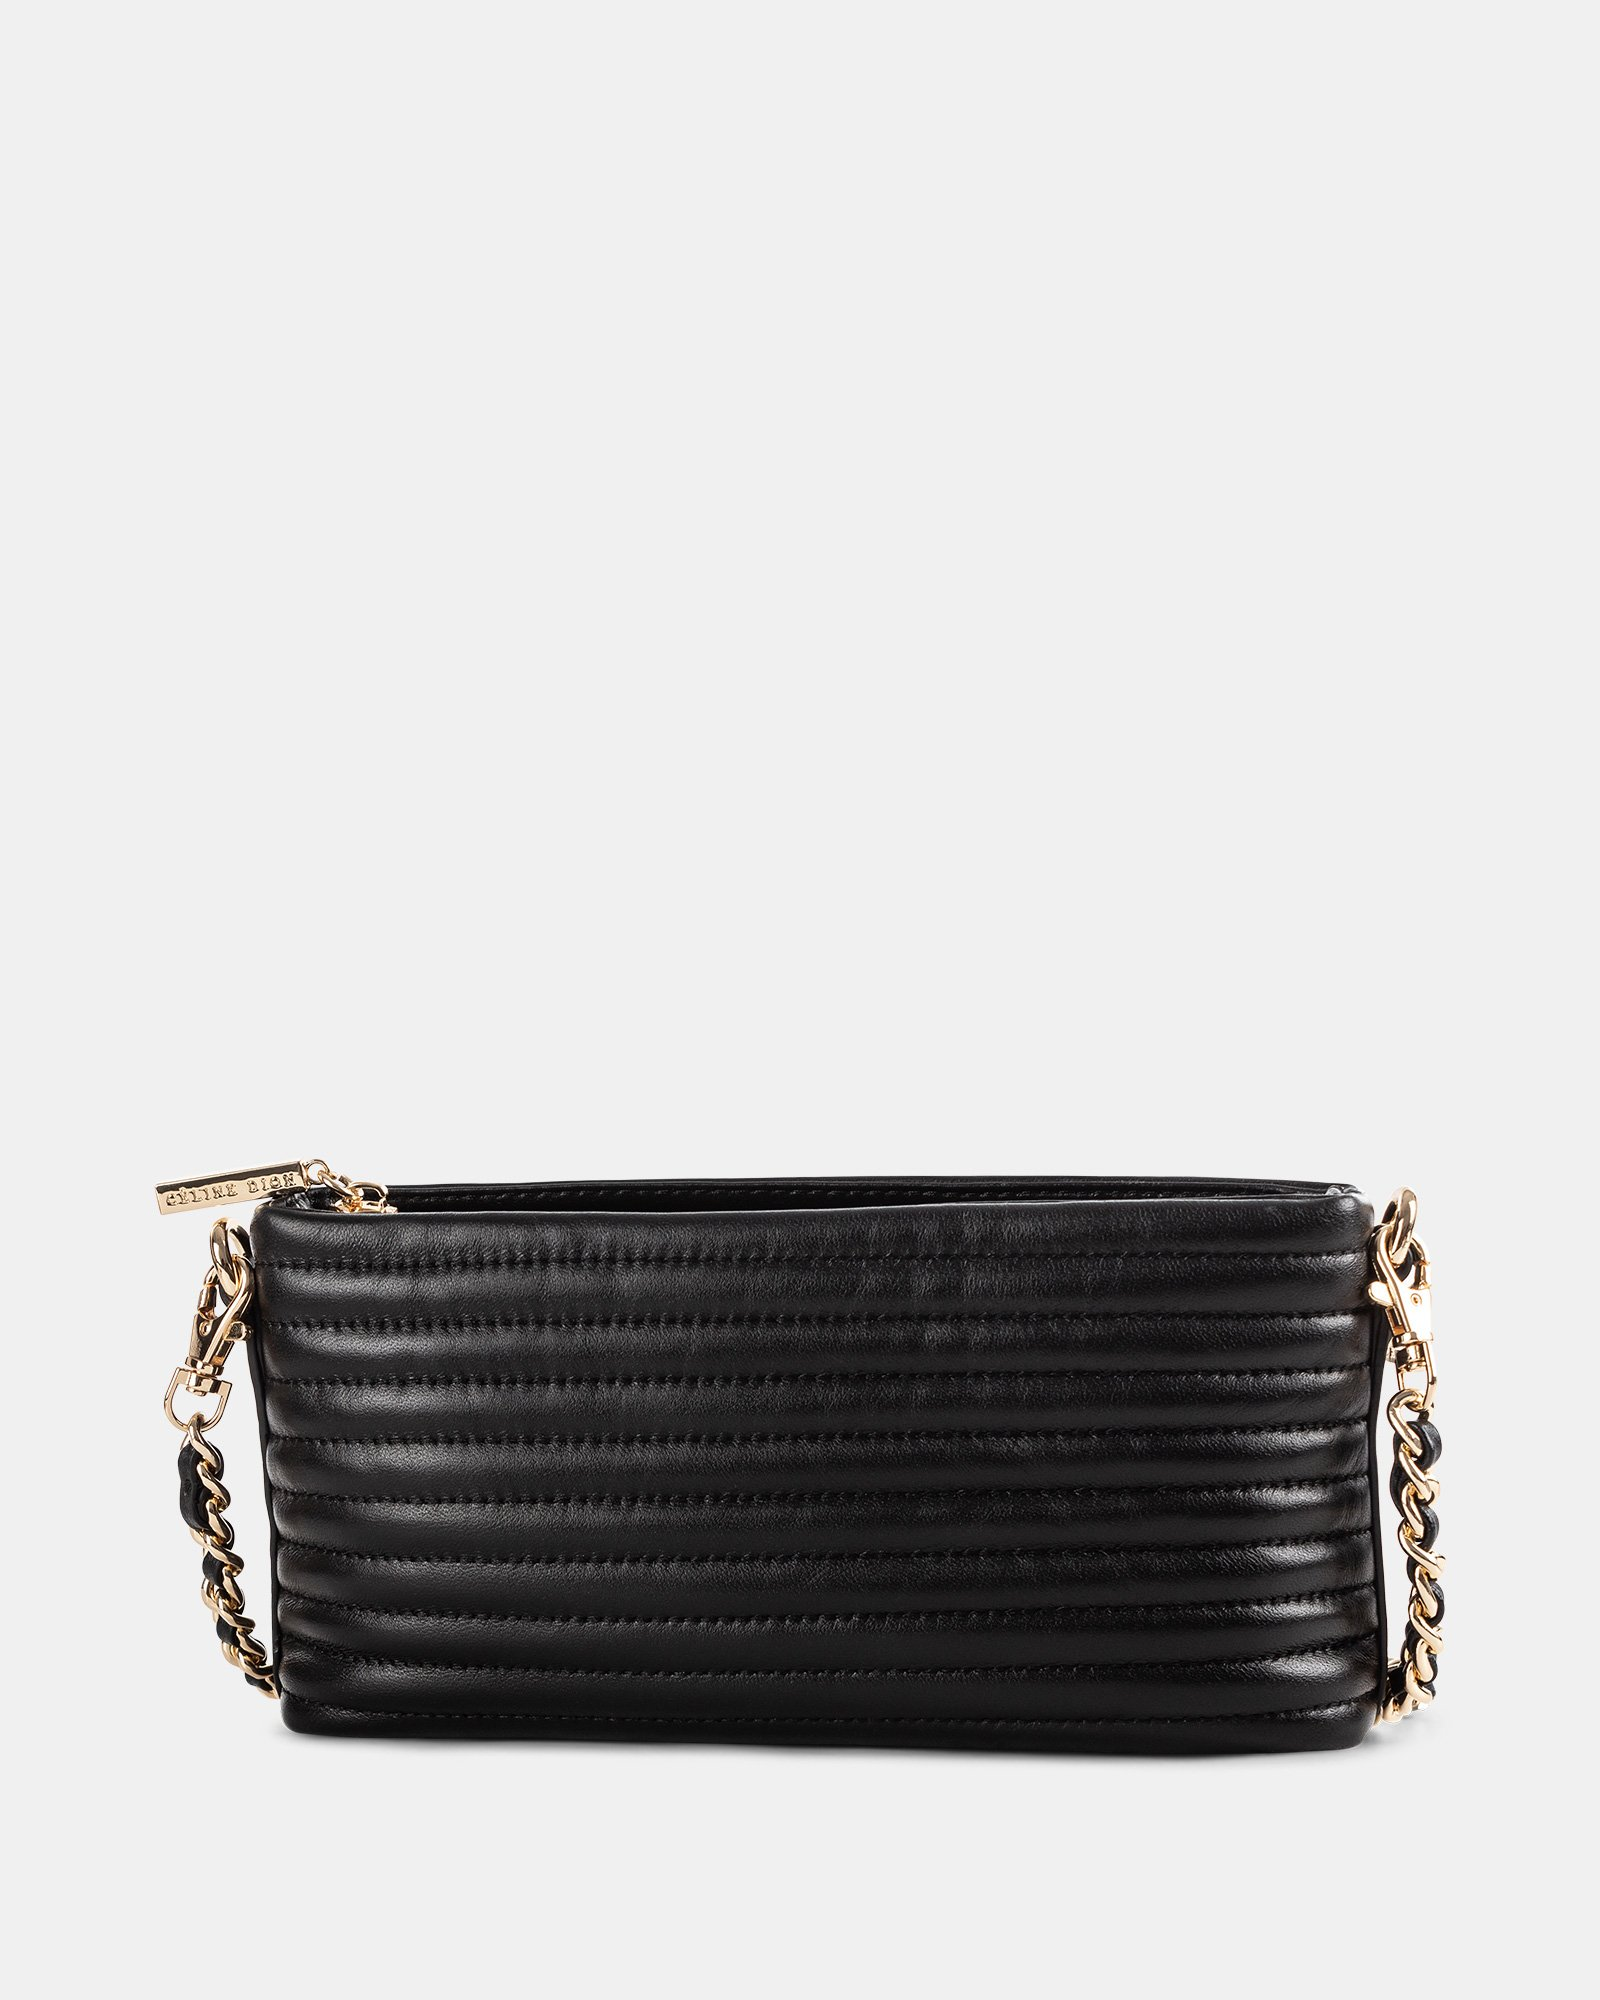 VIBRATO - Quilted leather crossbody with removable strap- BLACK - Céline Dion - Zoom